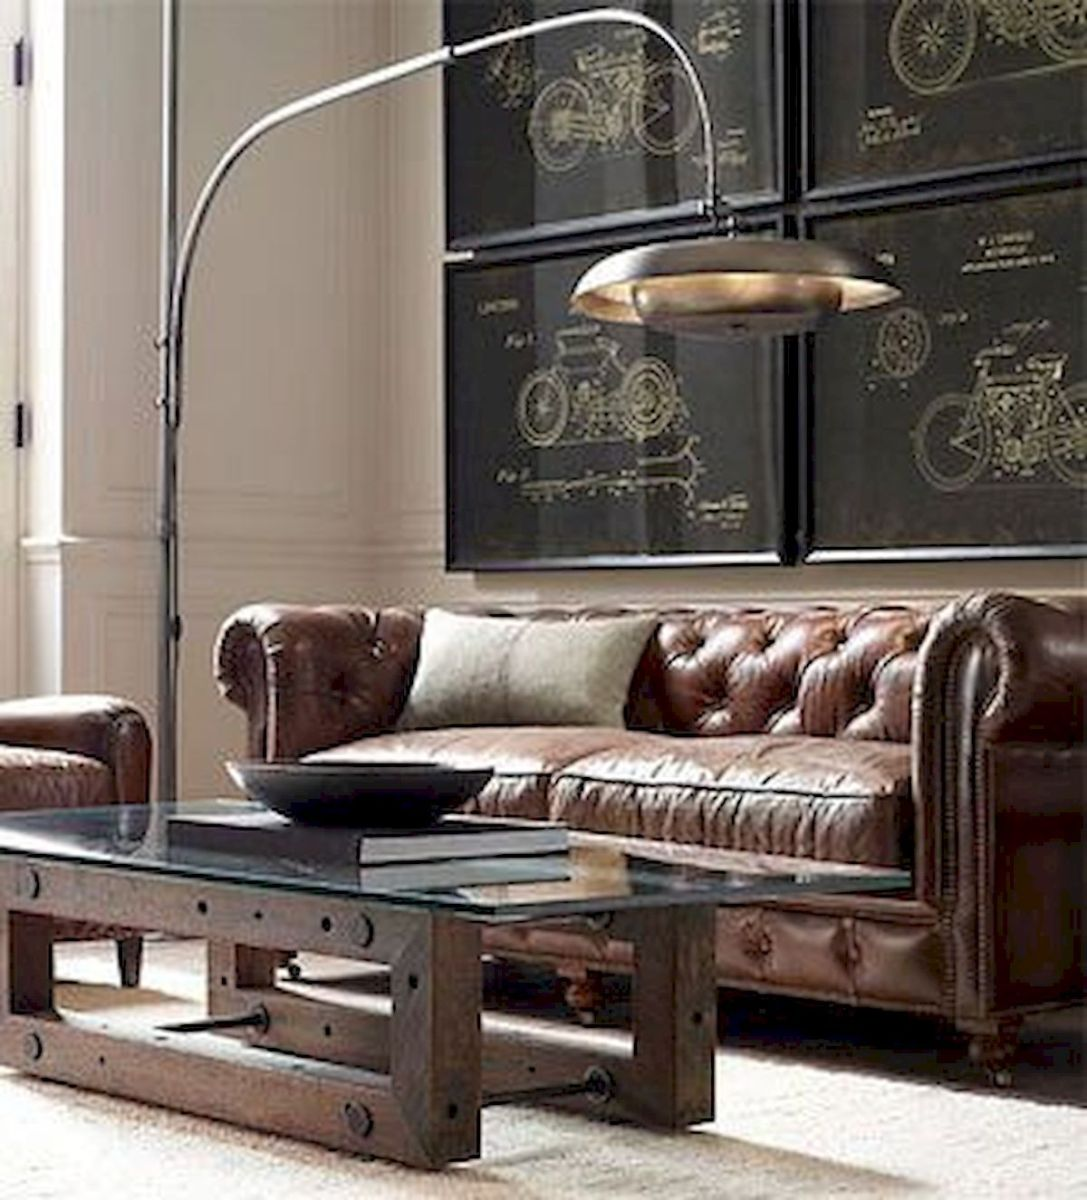 72 Industrial Living Room Decor Ideas (5)